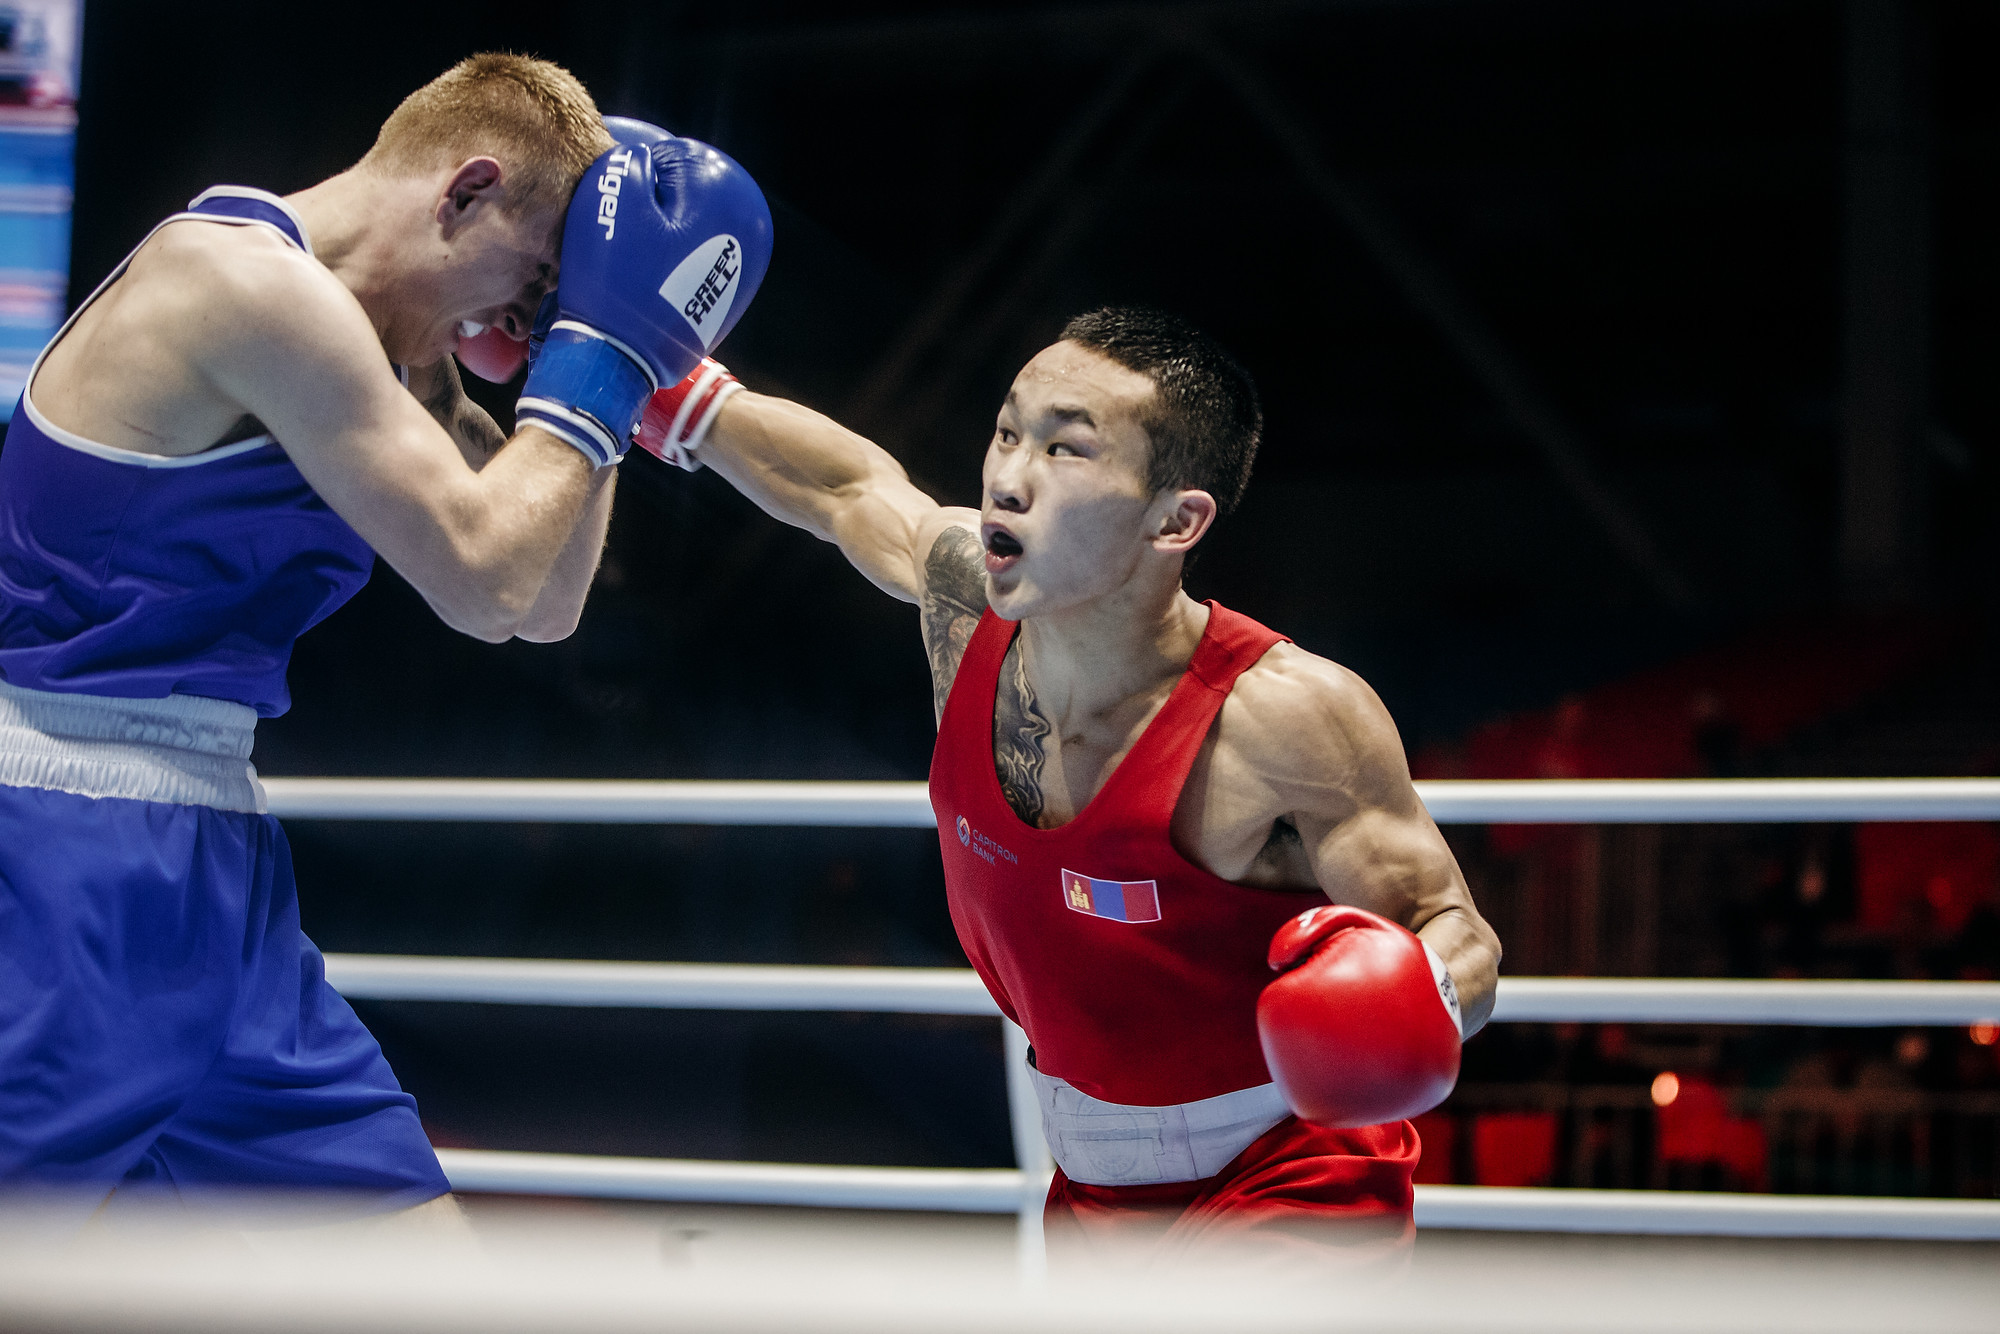 Featherweight Erdenebat too good for Walker at AIBA Men's World Championships